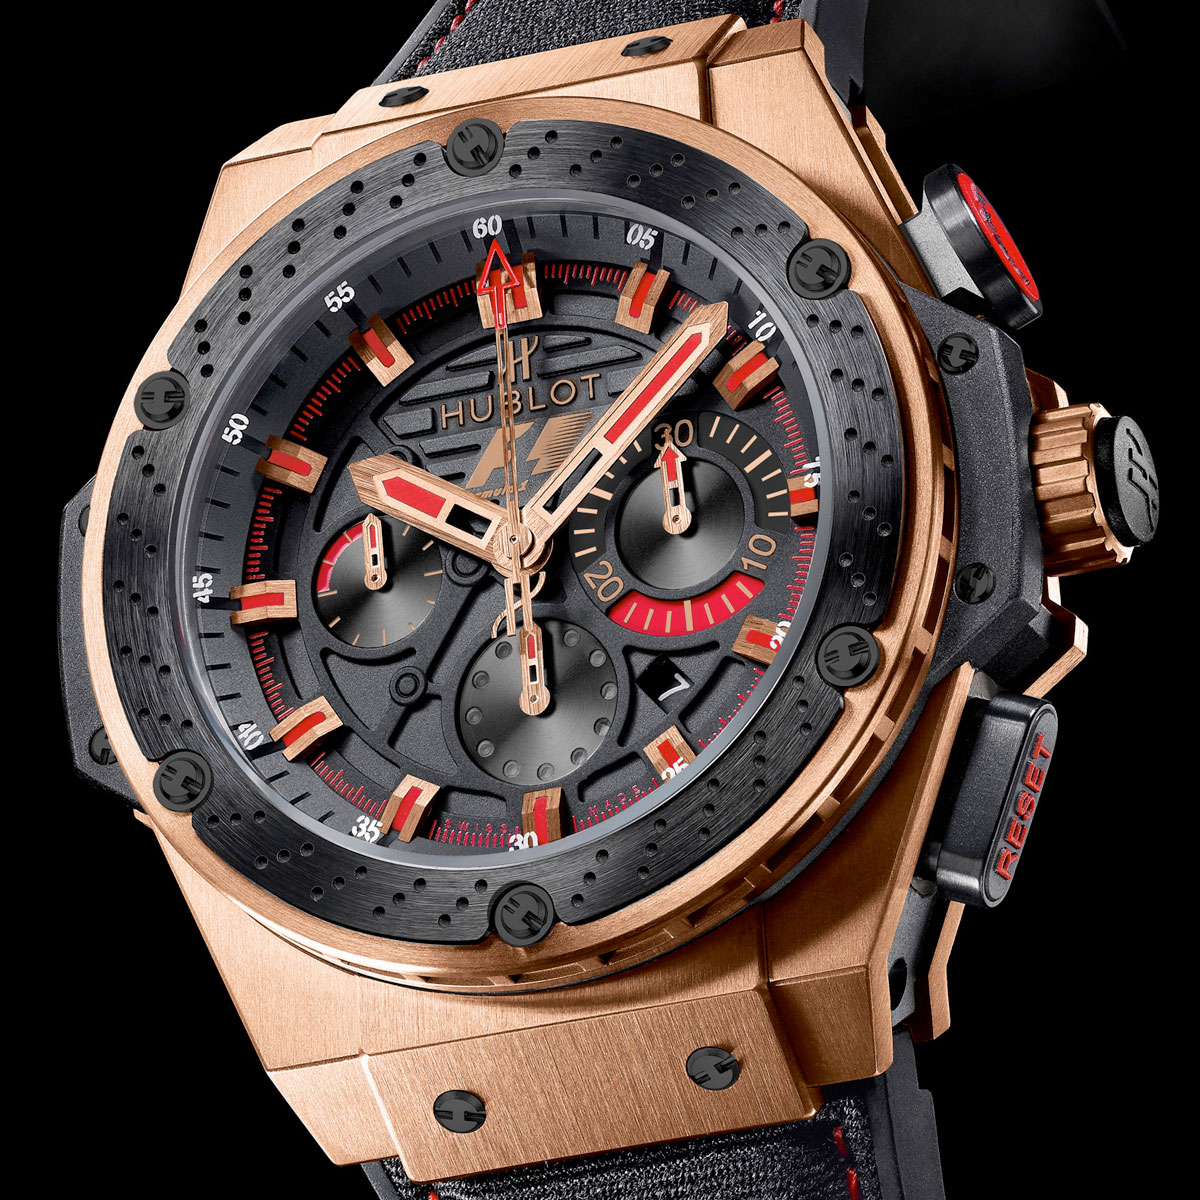 montre hublot la ferrari prix hublot mp 05 la ferrari tourbillon. Black Bedroom Furniture Sets. Home Design Ideas